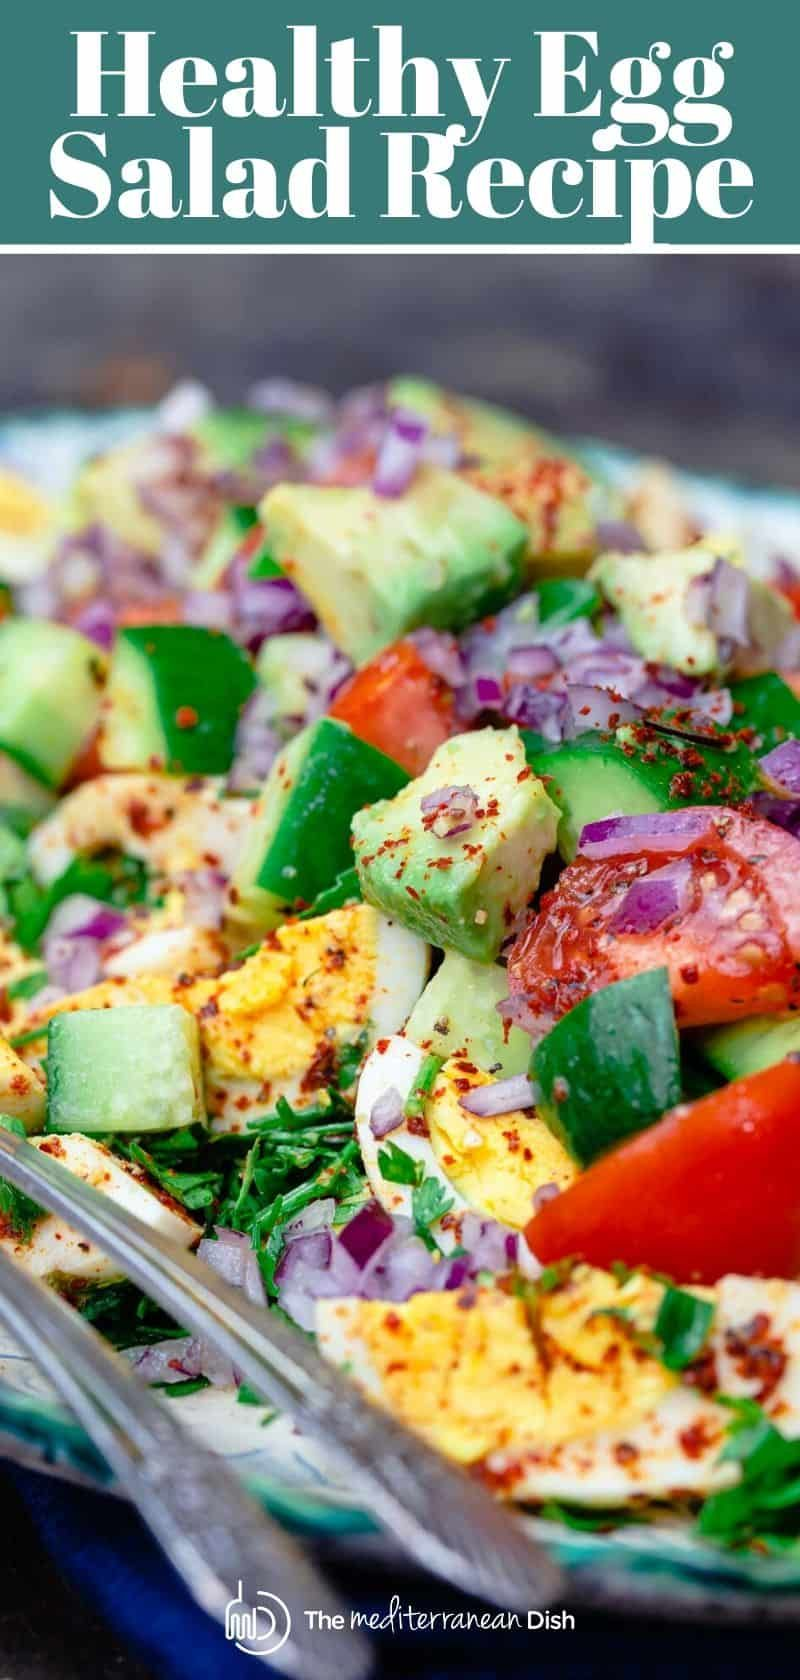 Looking For A Healthy Egg Salad That Is Not Your Average This Is It Prepared Mediterranean Style In 2020 Healthy Egg Salad Egg Salad Recipe Healthy Egg Salad Recipe